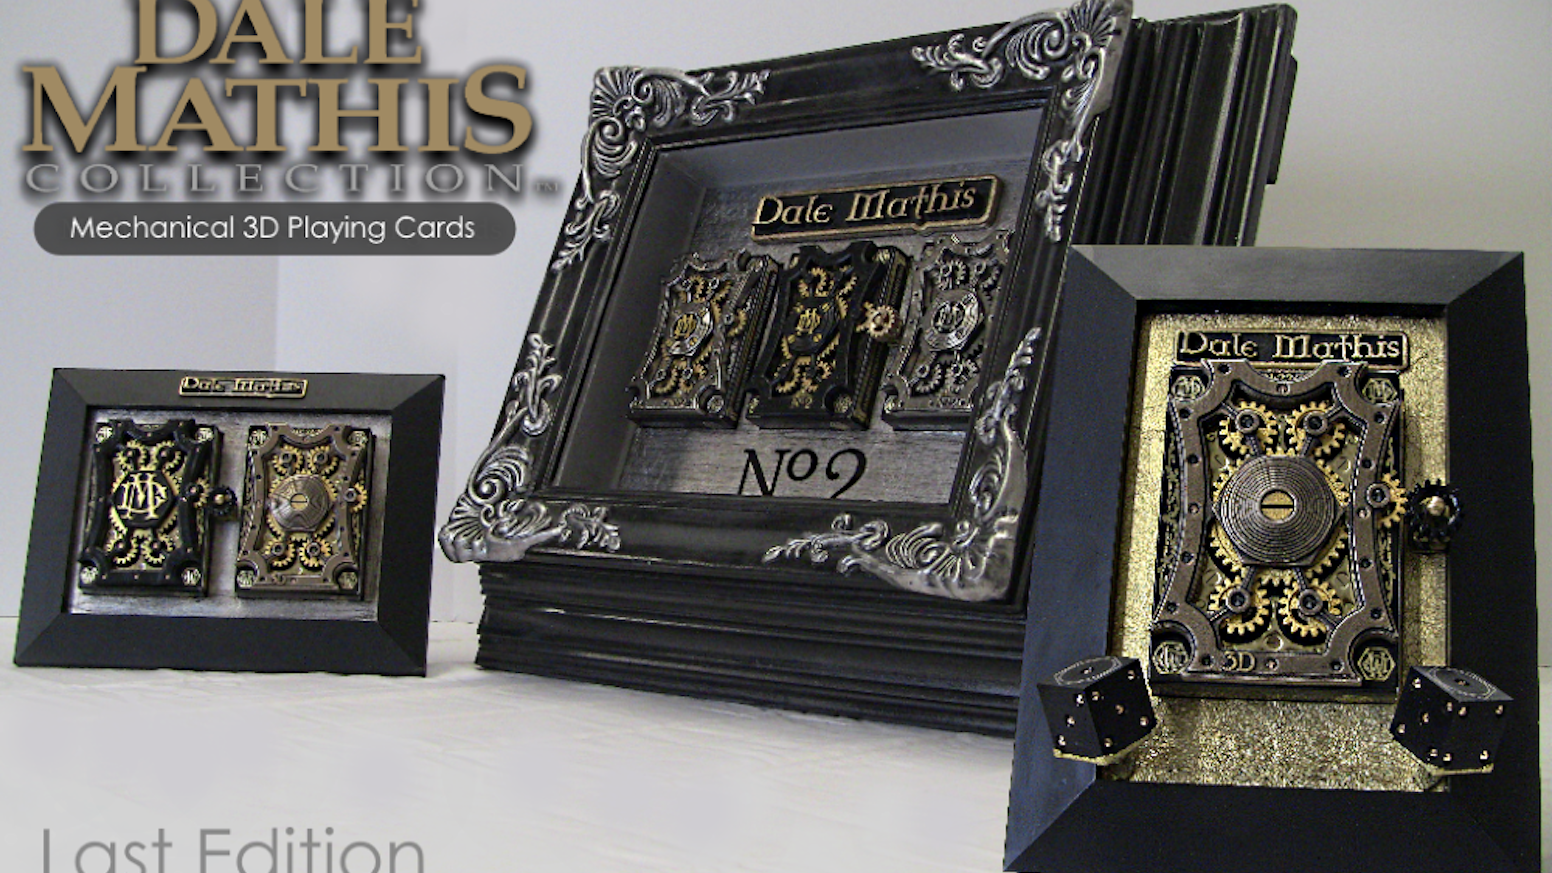 Dale Mathis launches V2 of the Metal Mechanized 3D playing cards